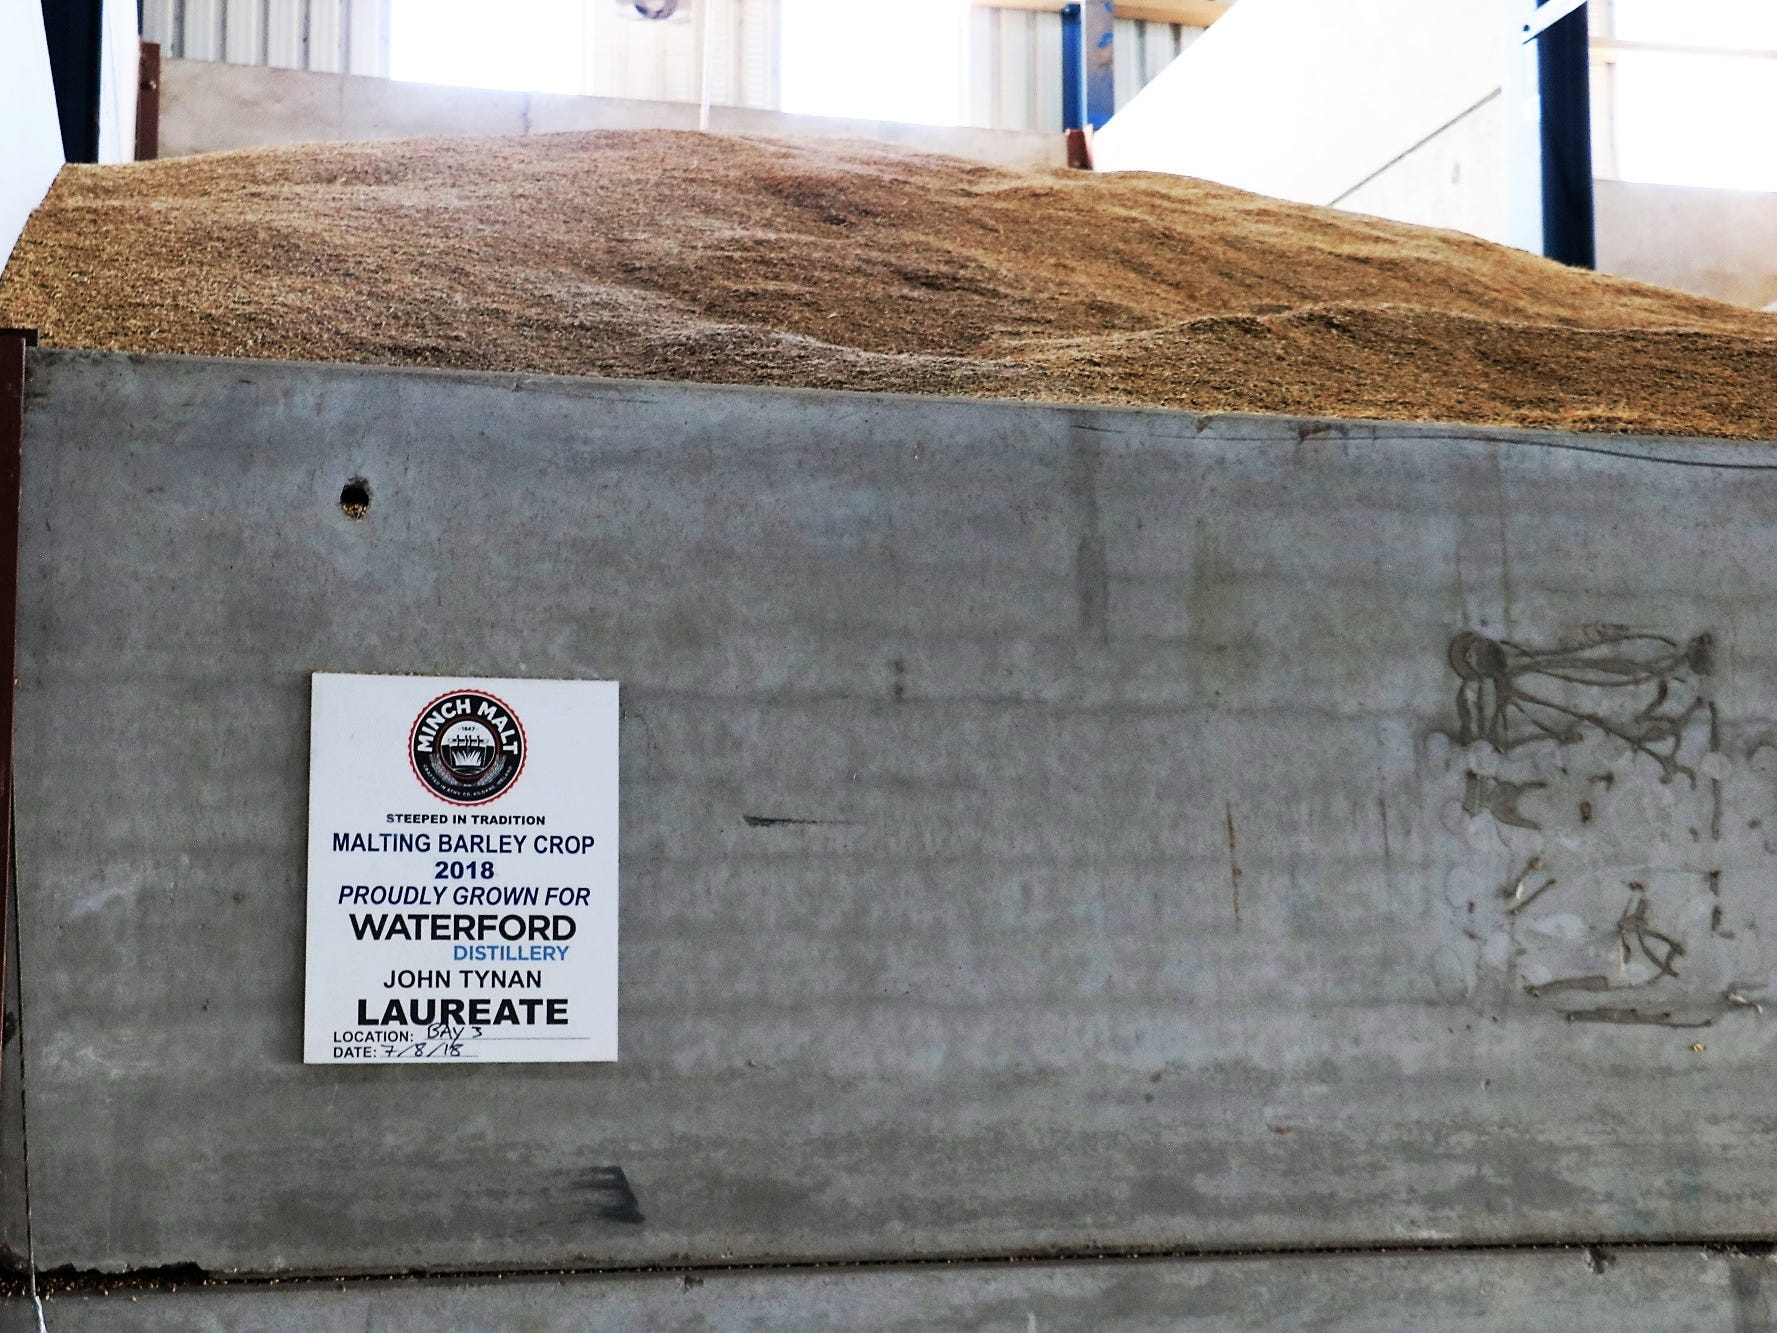 """This is Waterford's """"cathedral,"""" where grain is dried and stored after harvest, before being sent to the maltster. With each batch of whiskey being made from a distinct batch of barley, it's essential to keep everything separated and properly tracked. """"There is unequivocal traceability,"""" Reynier says."""